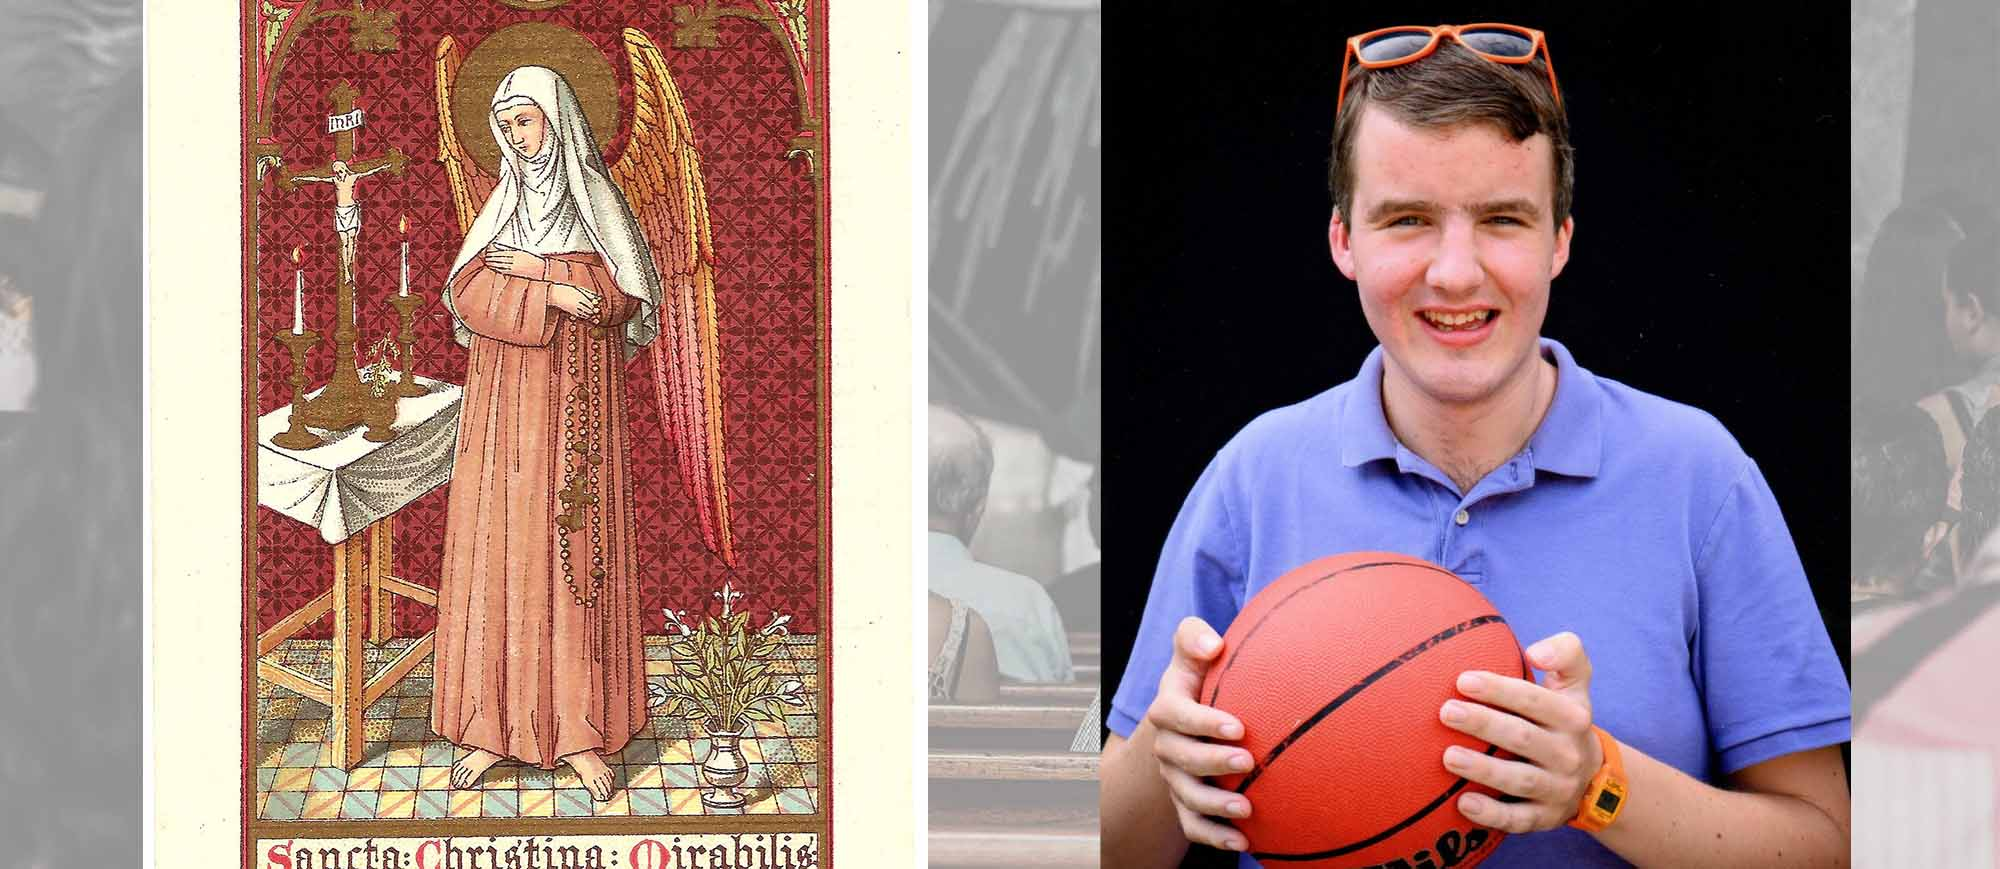 2 picutres. 1 - Saint Christina the Astonishing; 2 - Mary Beth's son, Ben.